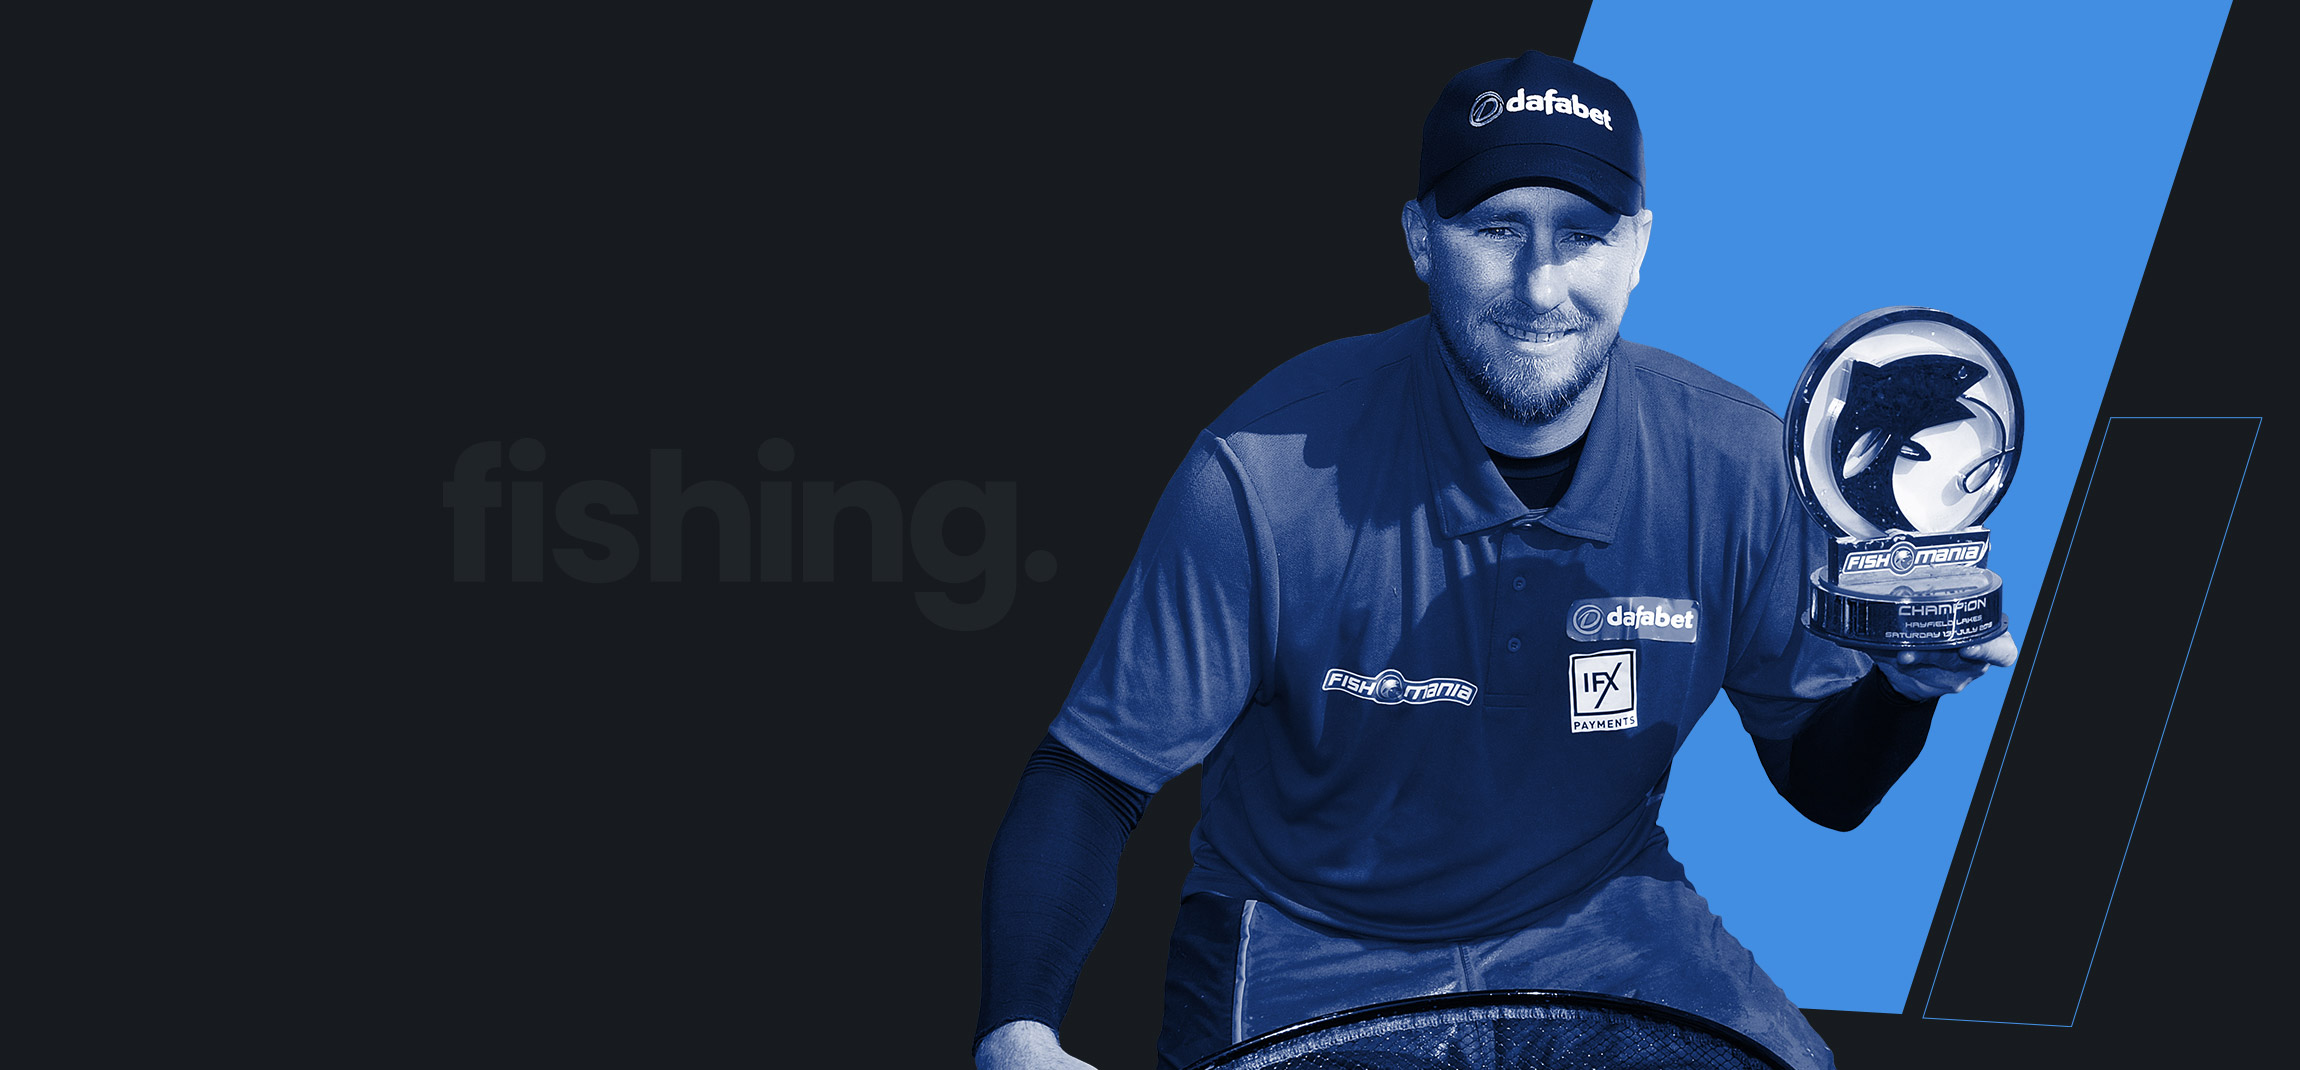 We are Matchroom Sport - We are Fishing